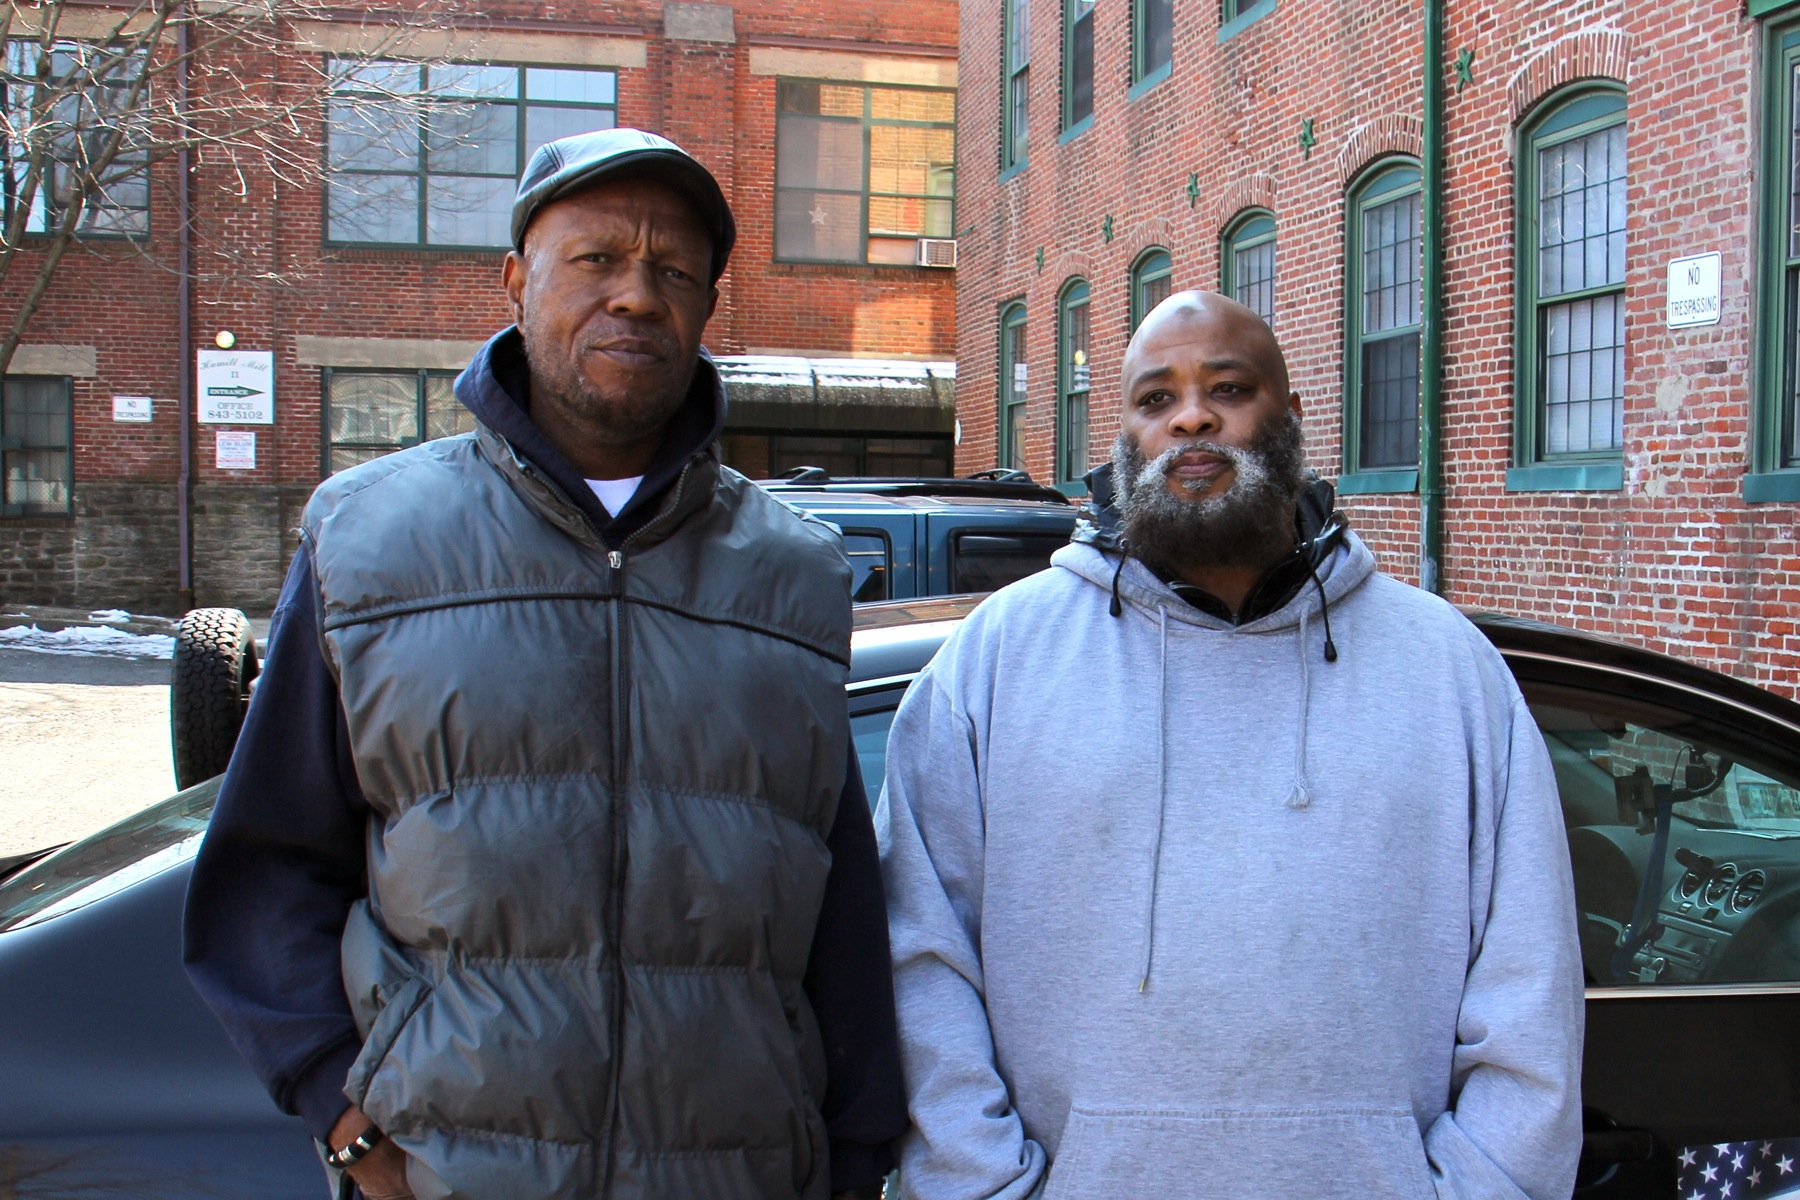 Brothers Tony Pointer (left) and Leroy Prince live in the Hamill Mill II apartments. Prince says he has to heat water on his stove for bathing. (